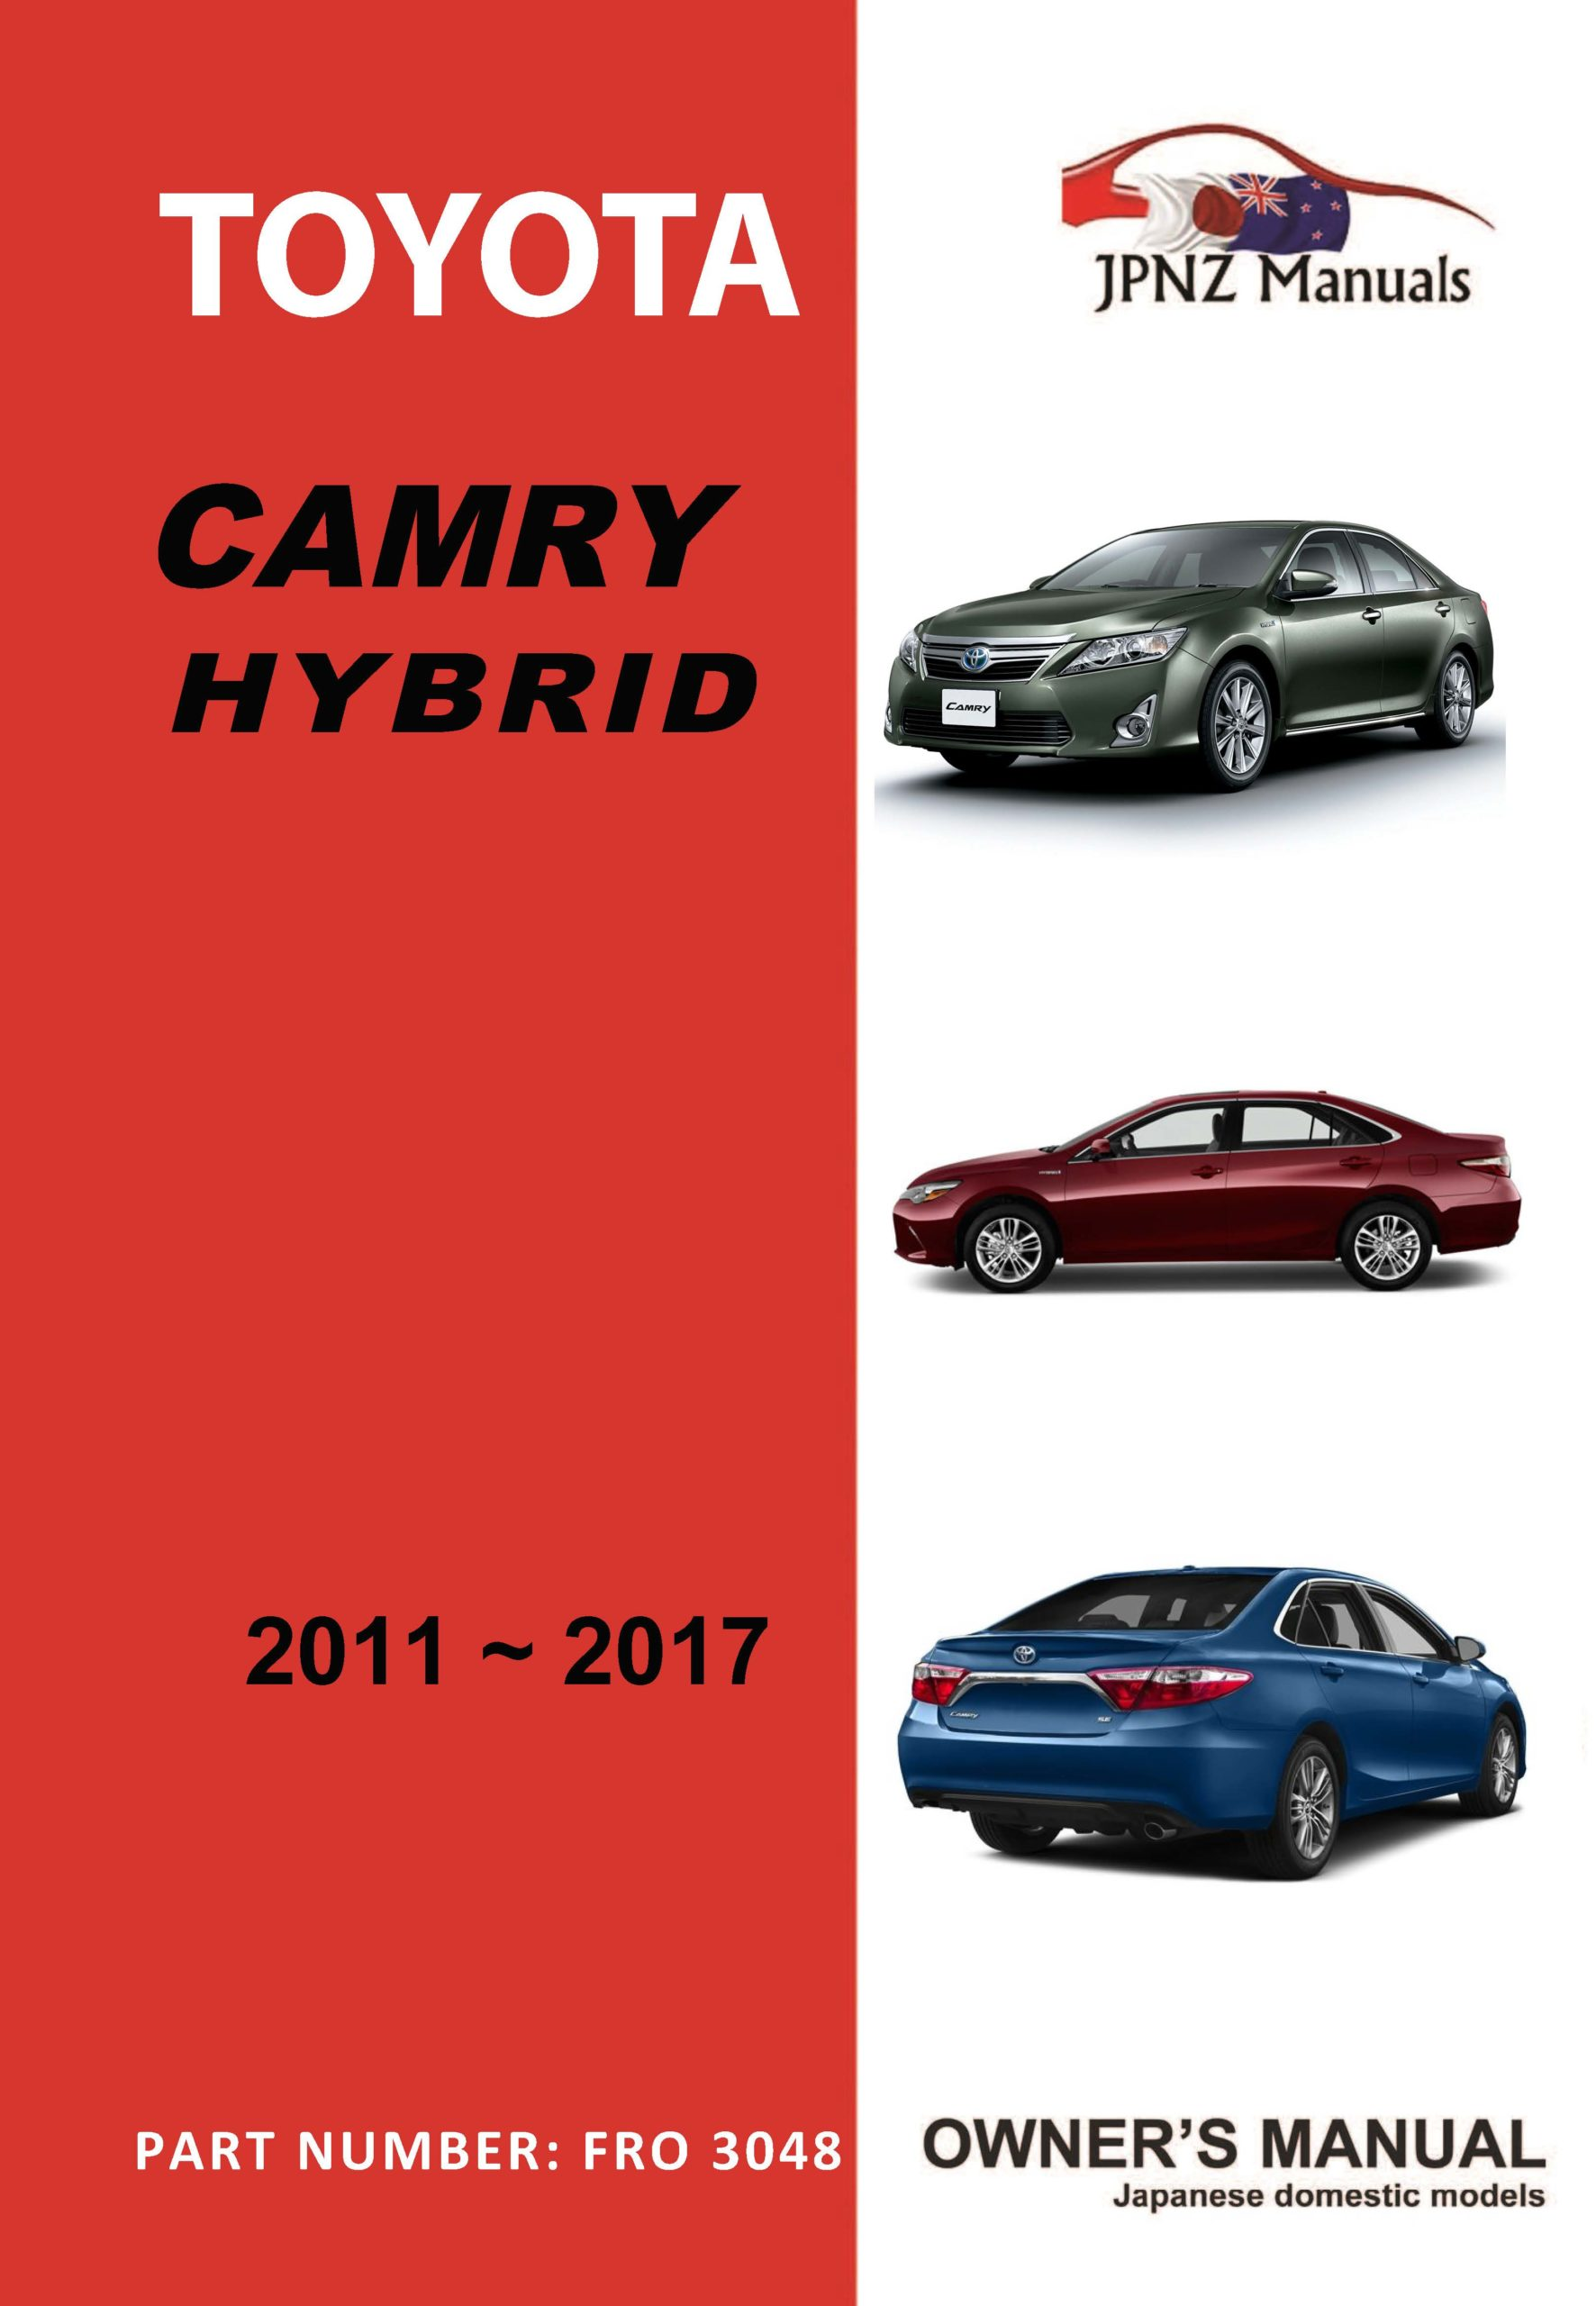 Toyota - Camry Hybrid owners user manual in English | 2011 - 2017